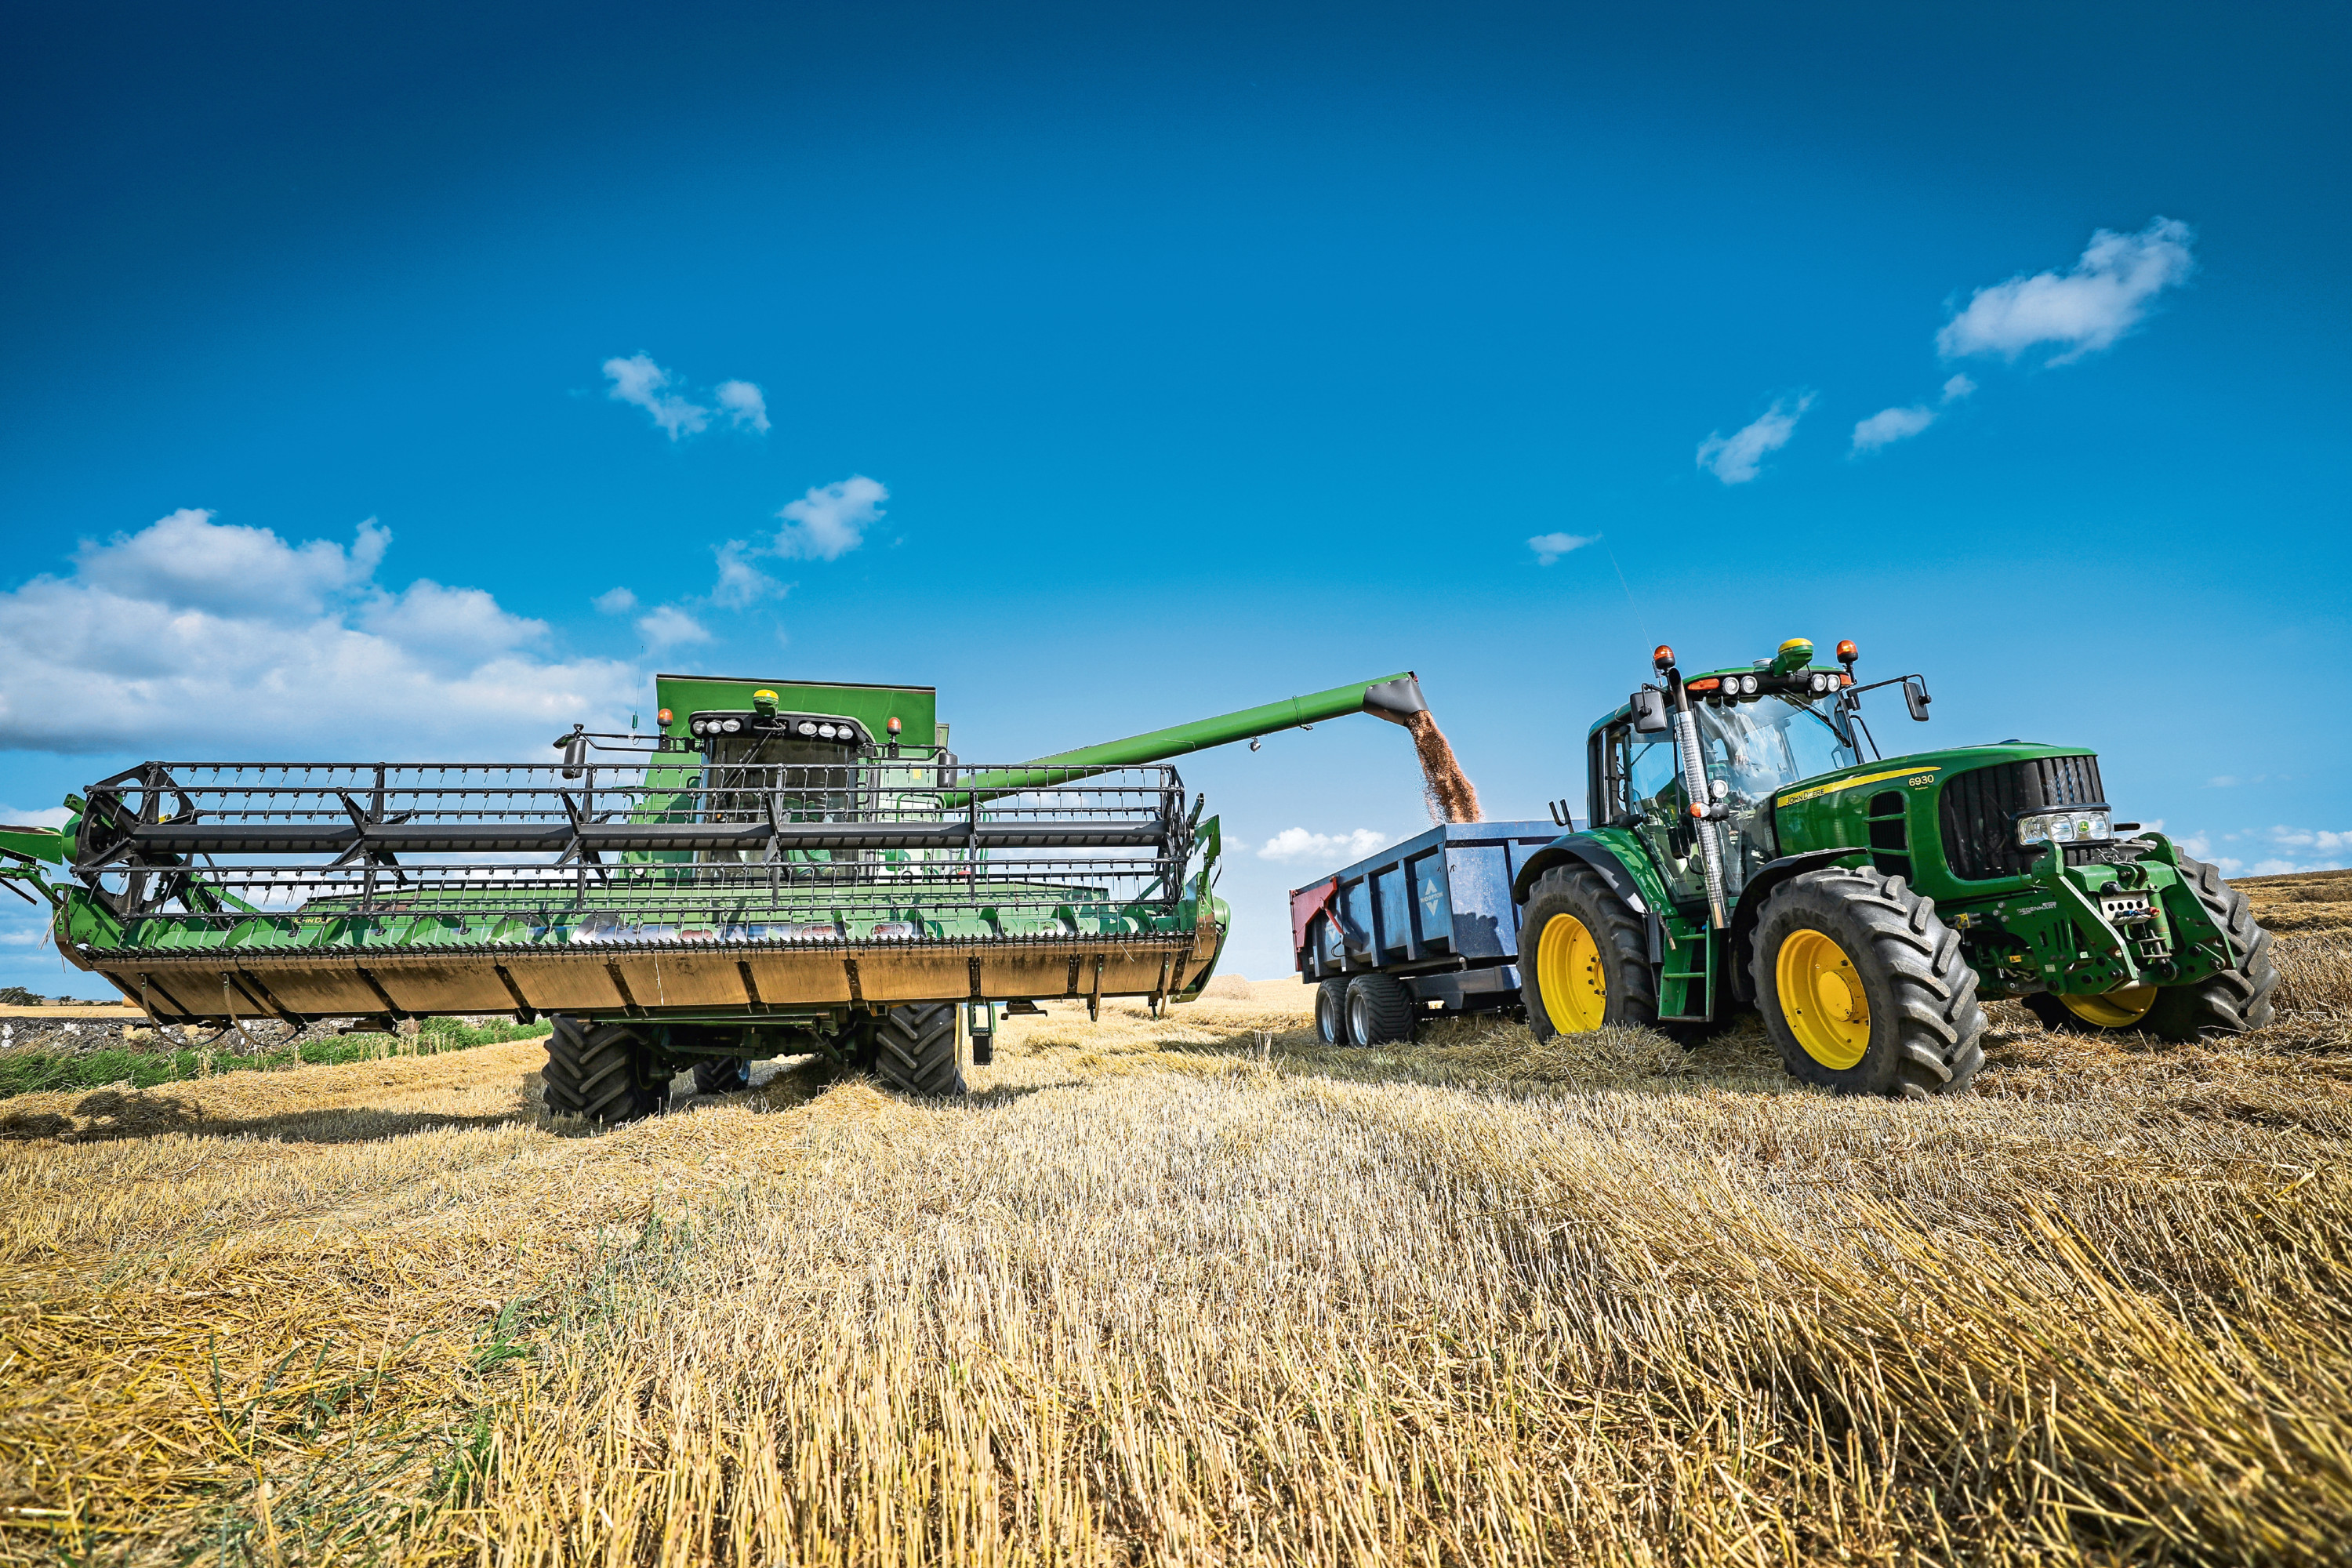 Average wheat yields were up 28% on last year.